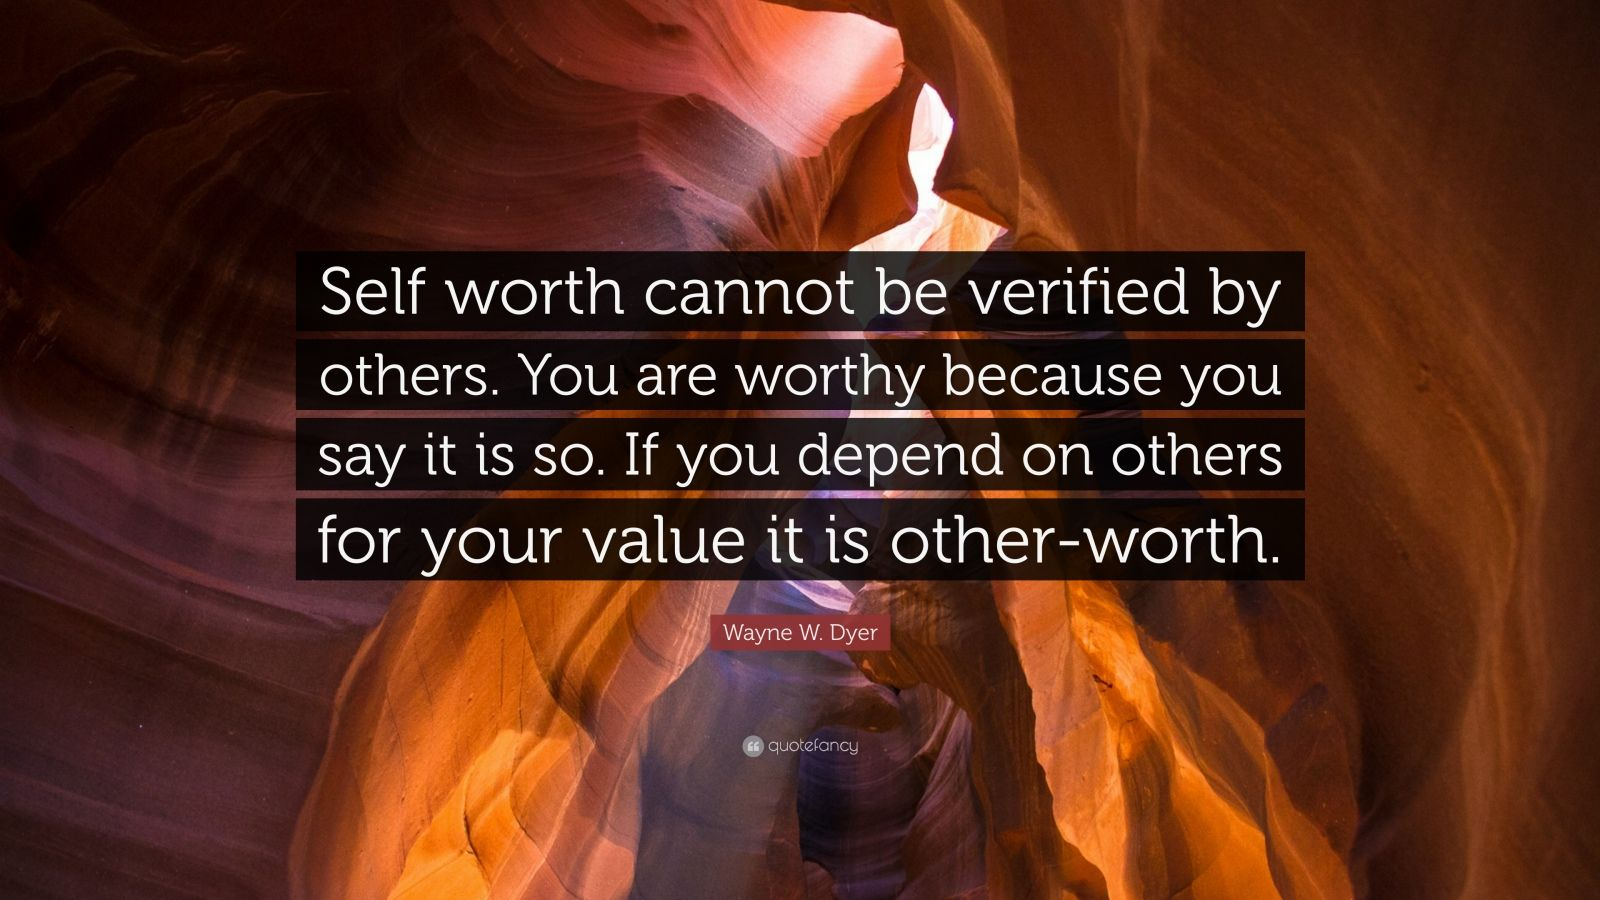 """Wayne W. Dyer Quote: """"Self worth cannot be verified by others. You are worthy because you say it is so. If you depend on others for your value it is other-worth."""""""